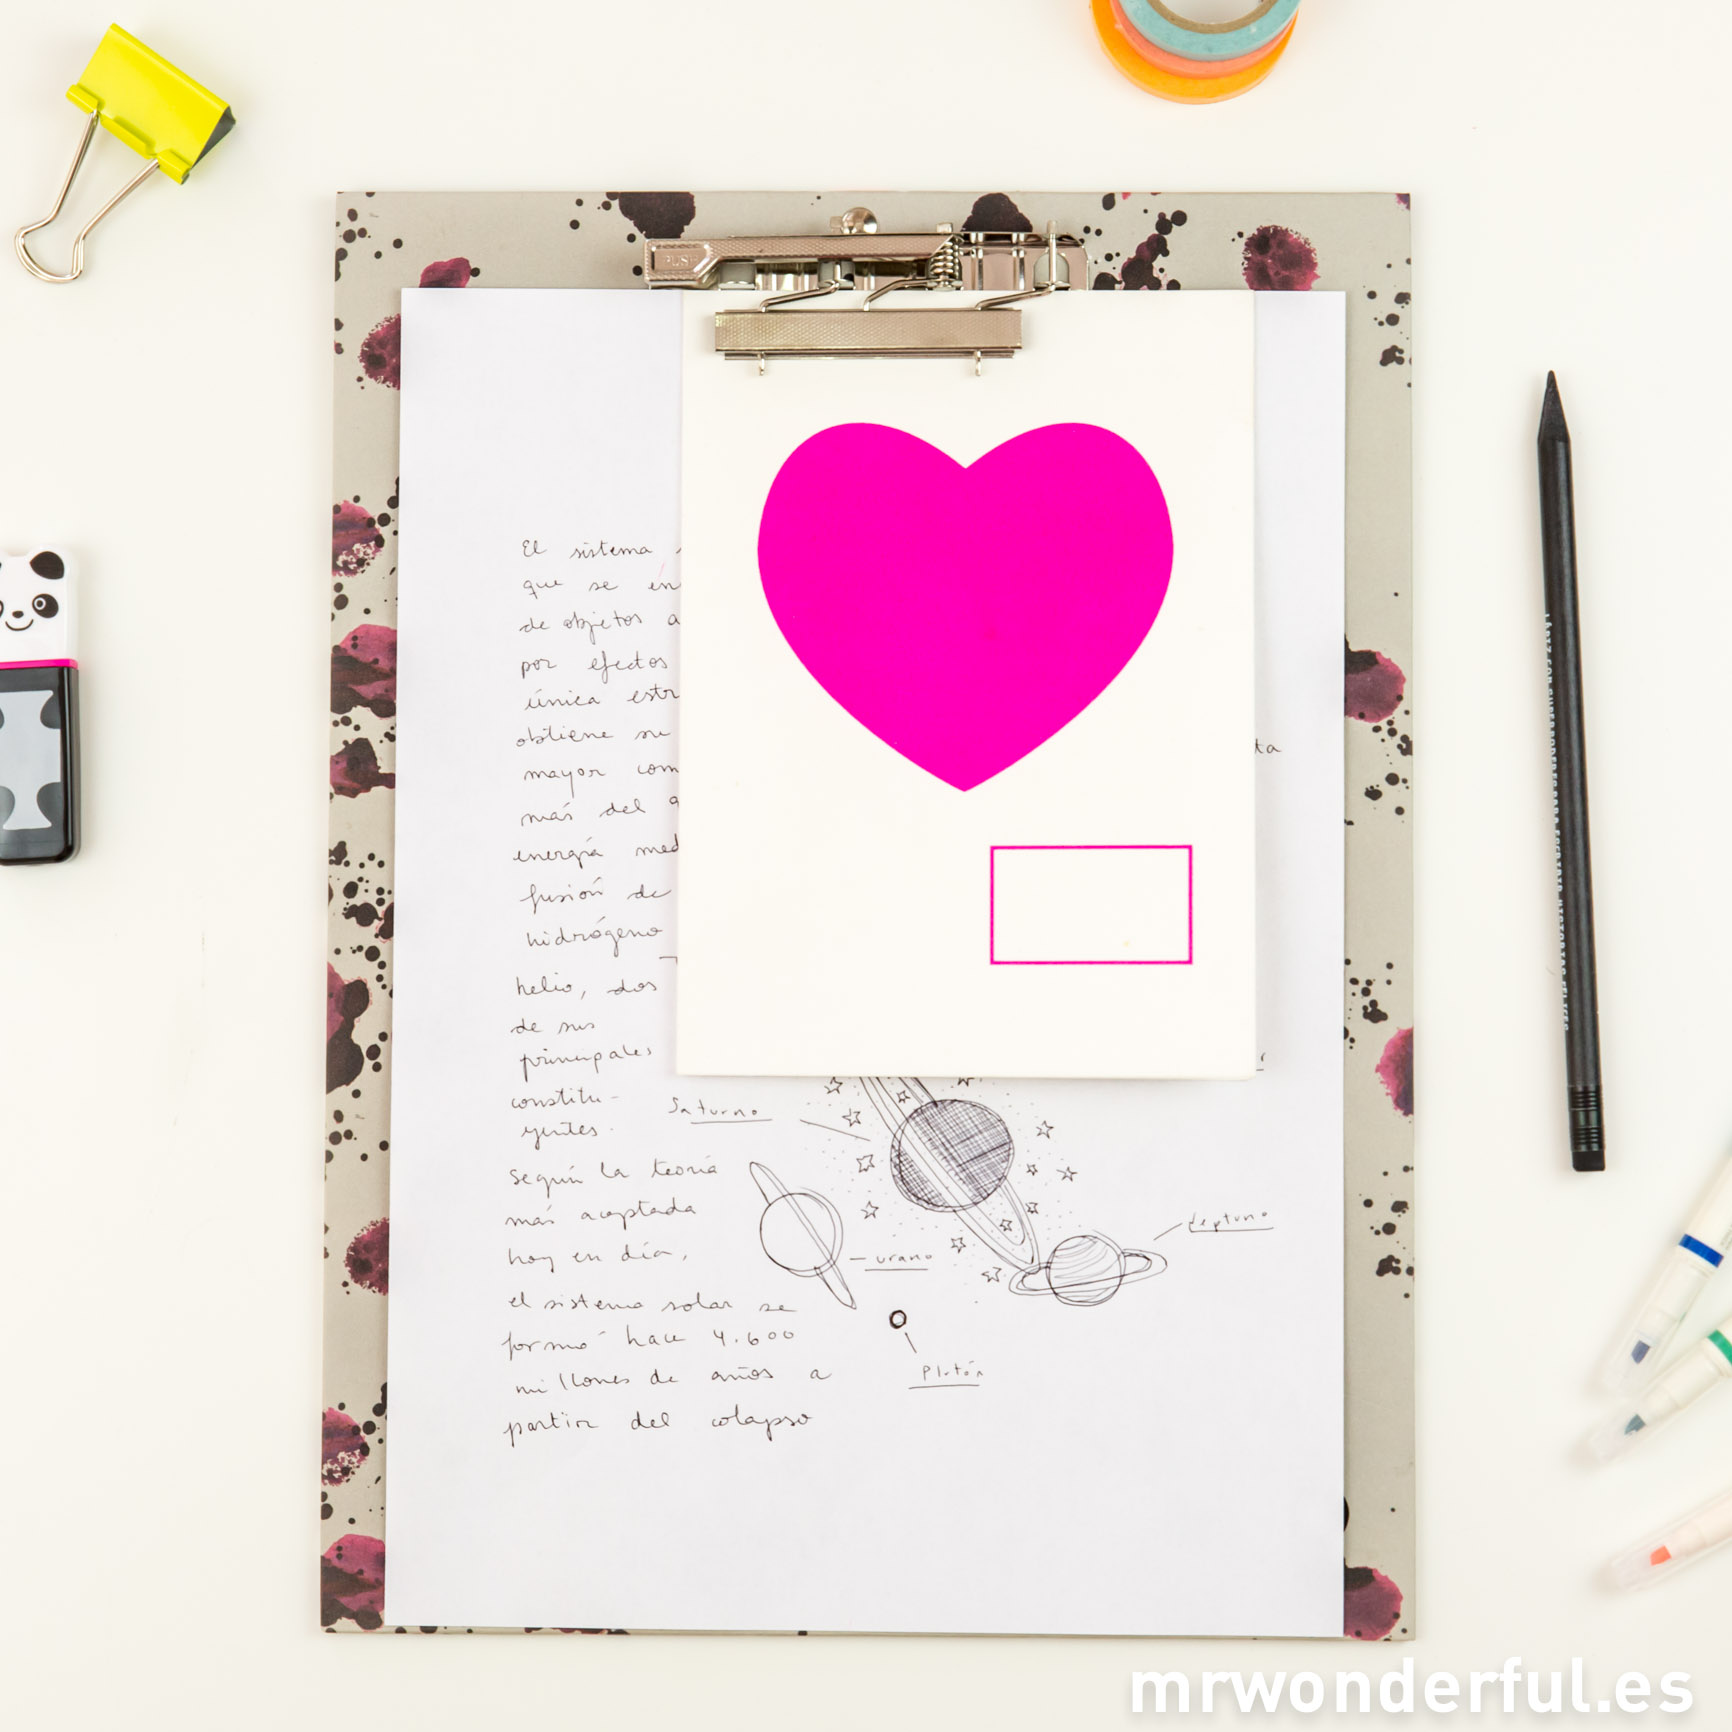 mrwonderful_SK0971_3_clipboard-marron-8